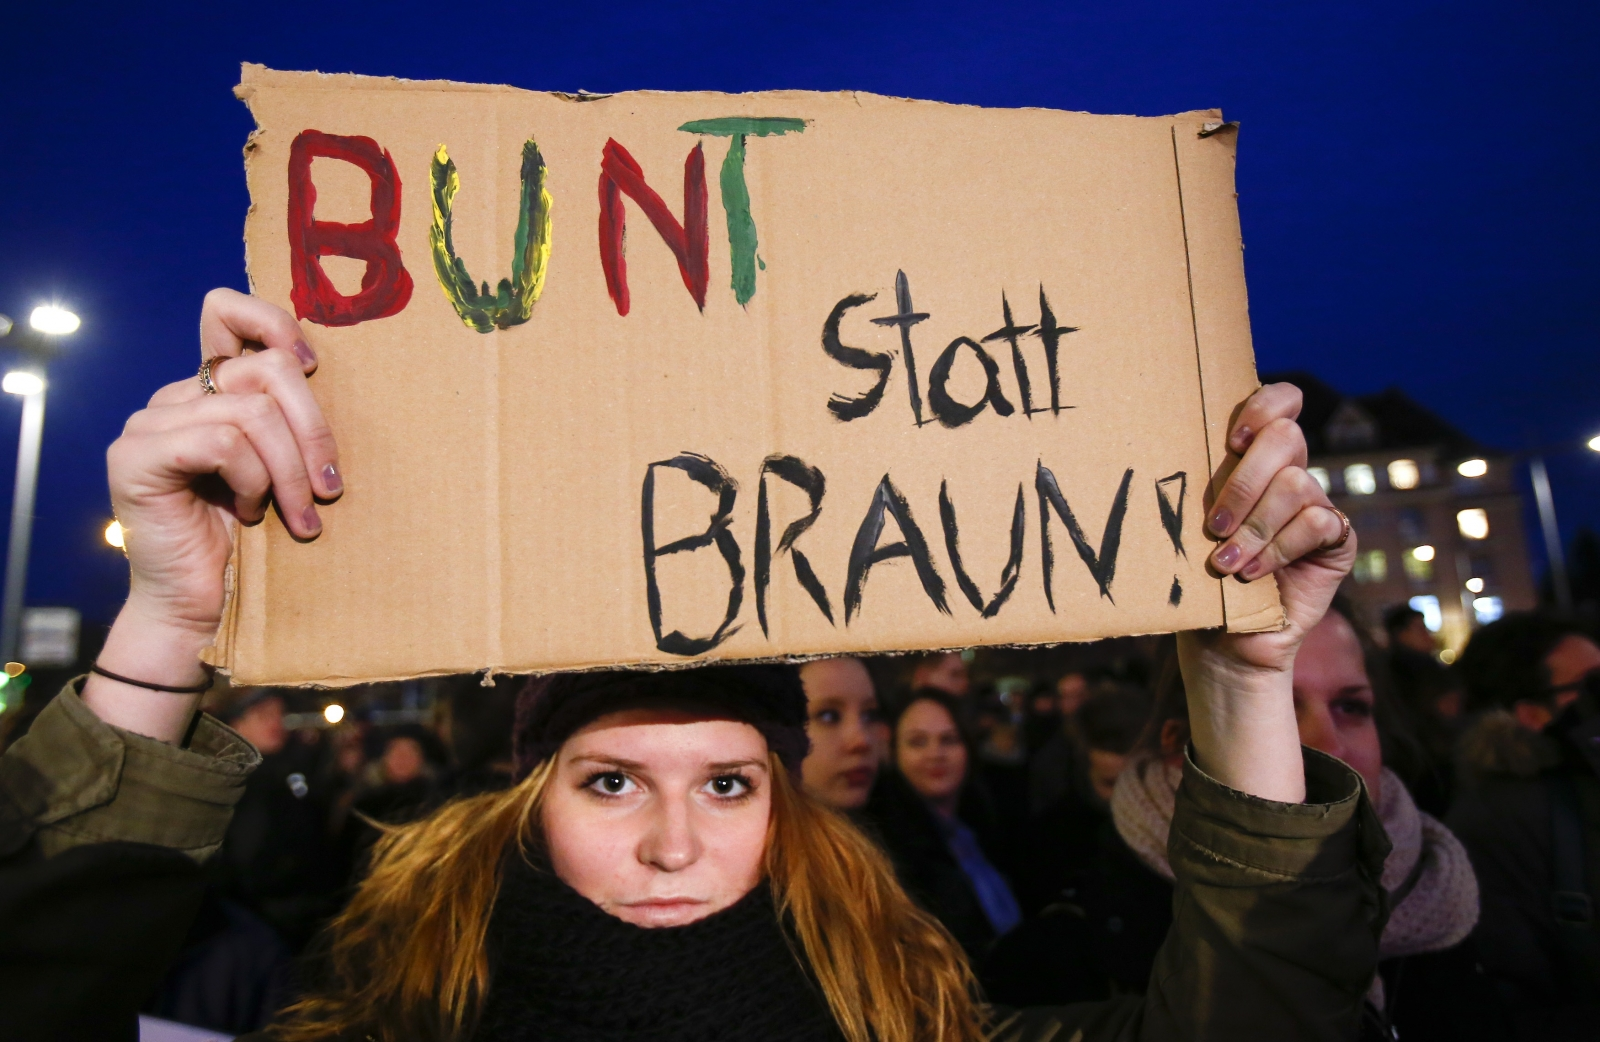 Germany: 15,000 join anti-Islam protest in Dresden